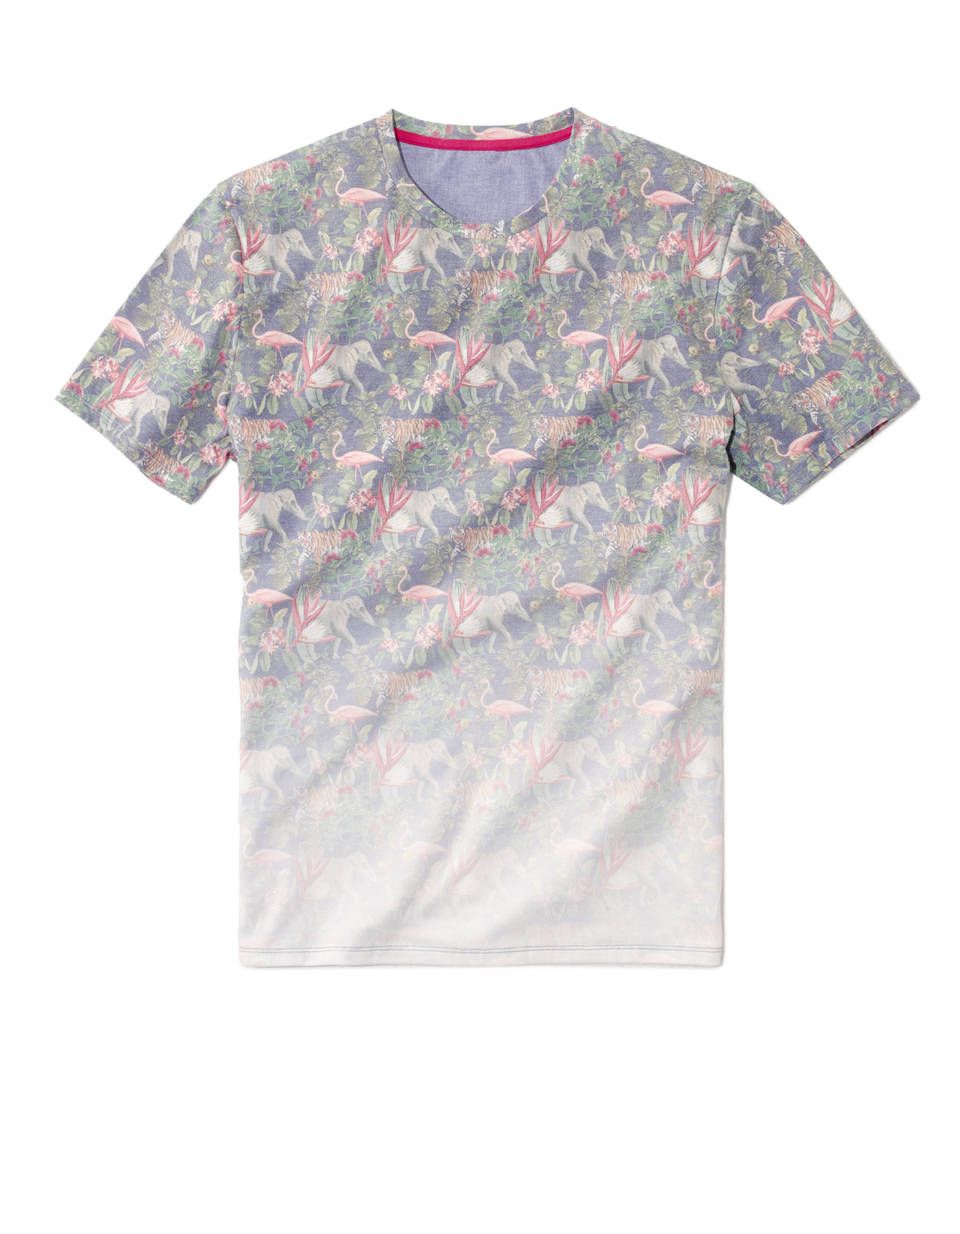 T Flamants France Roses Jaipur Shirt Collaboration Fkwonder Celio 0vmN8nwO